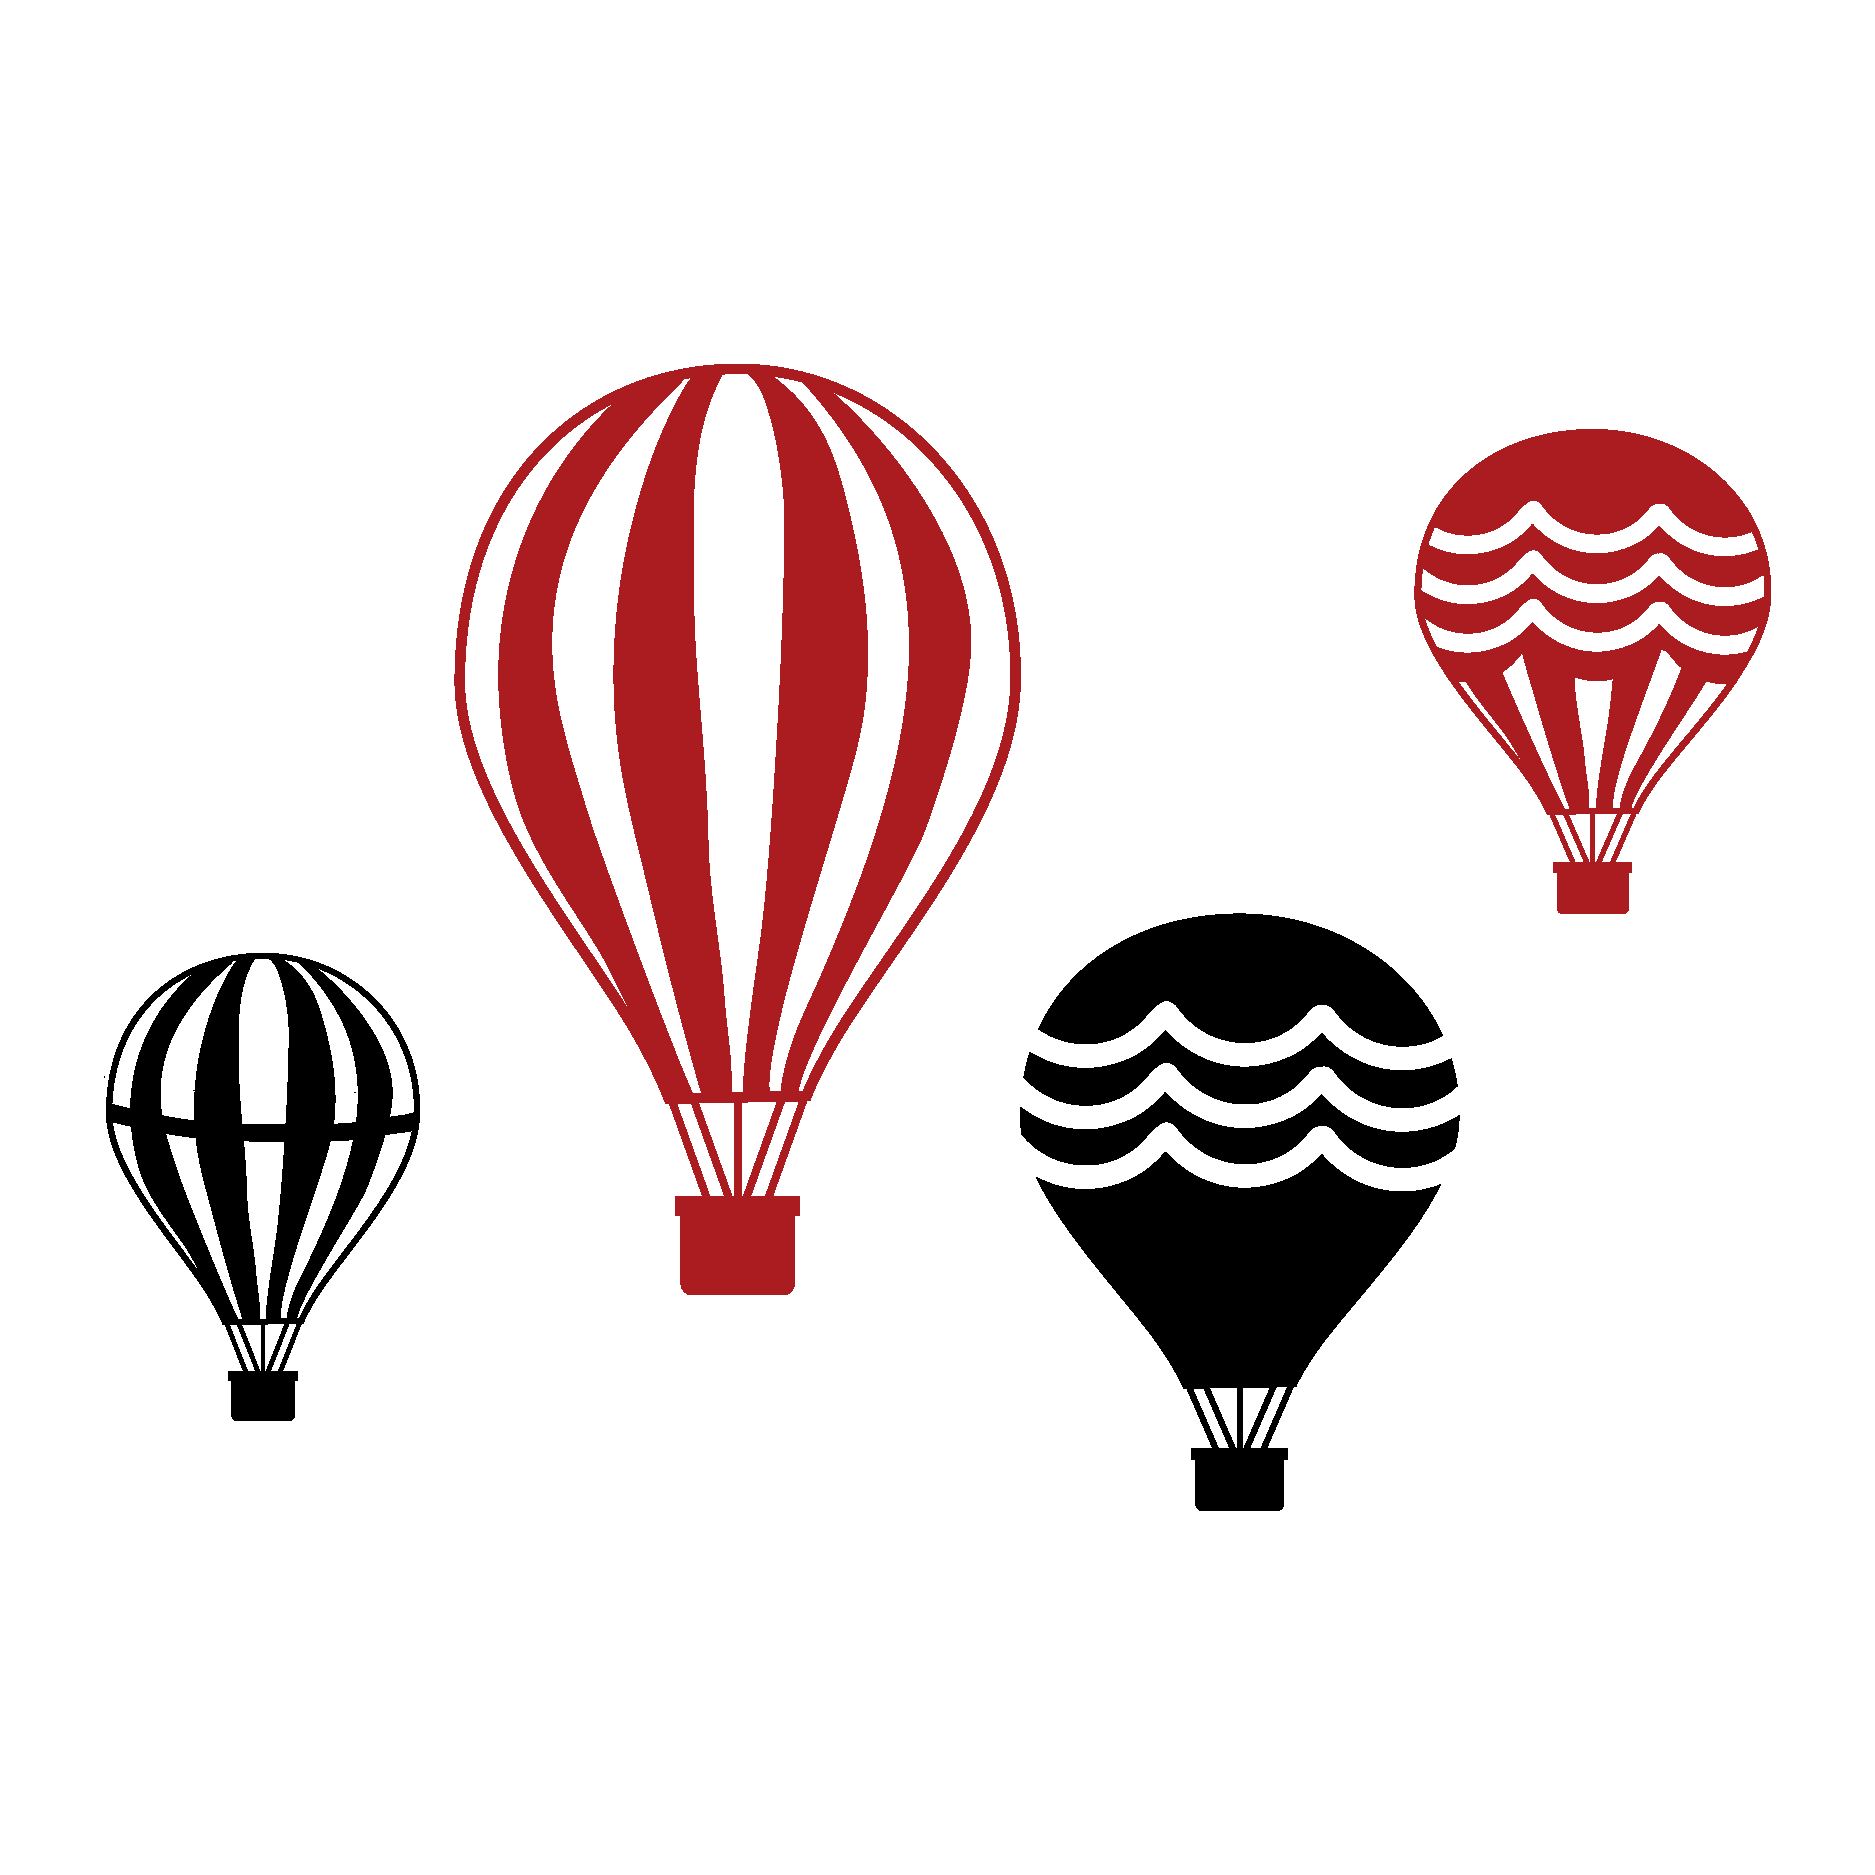 1875x1875 Vintage Hot Air Balloon Collection Wall Wall Art Decal